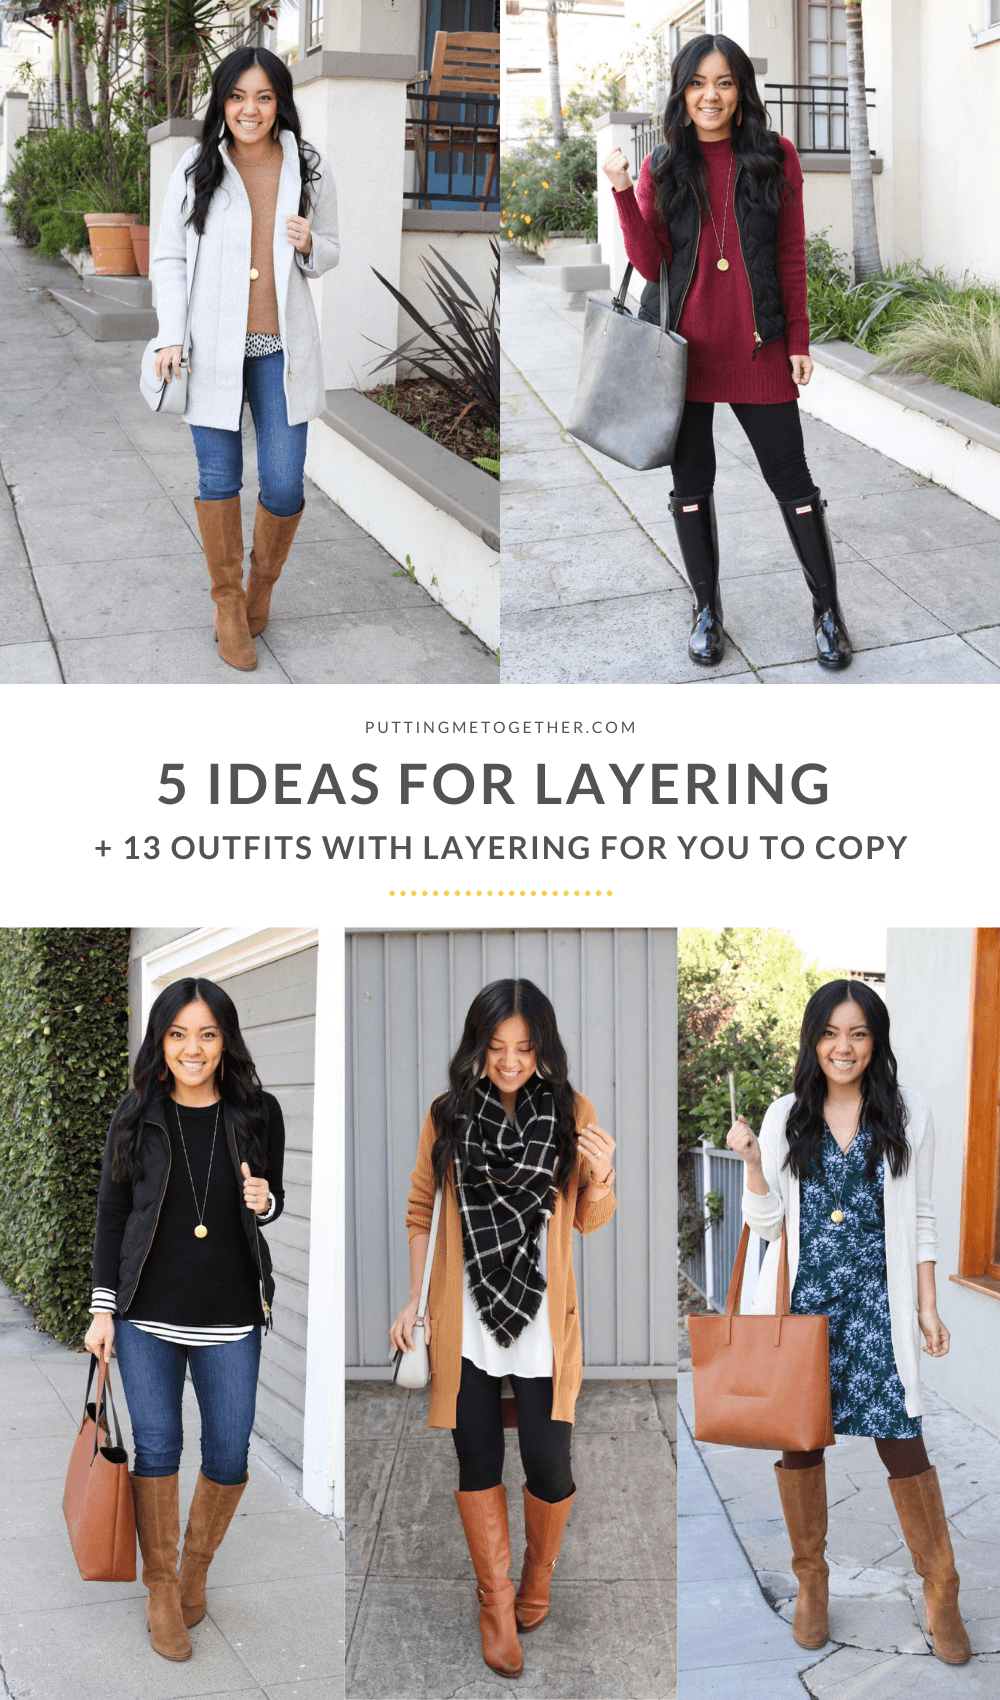 5 Ideas for Layering Your Outfits